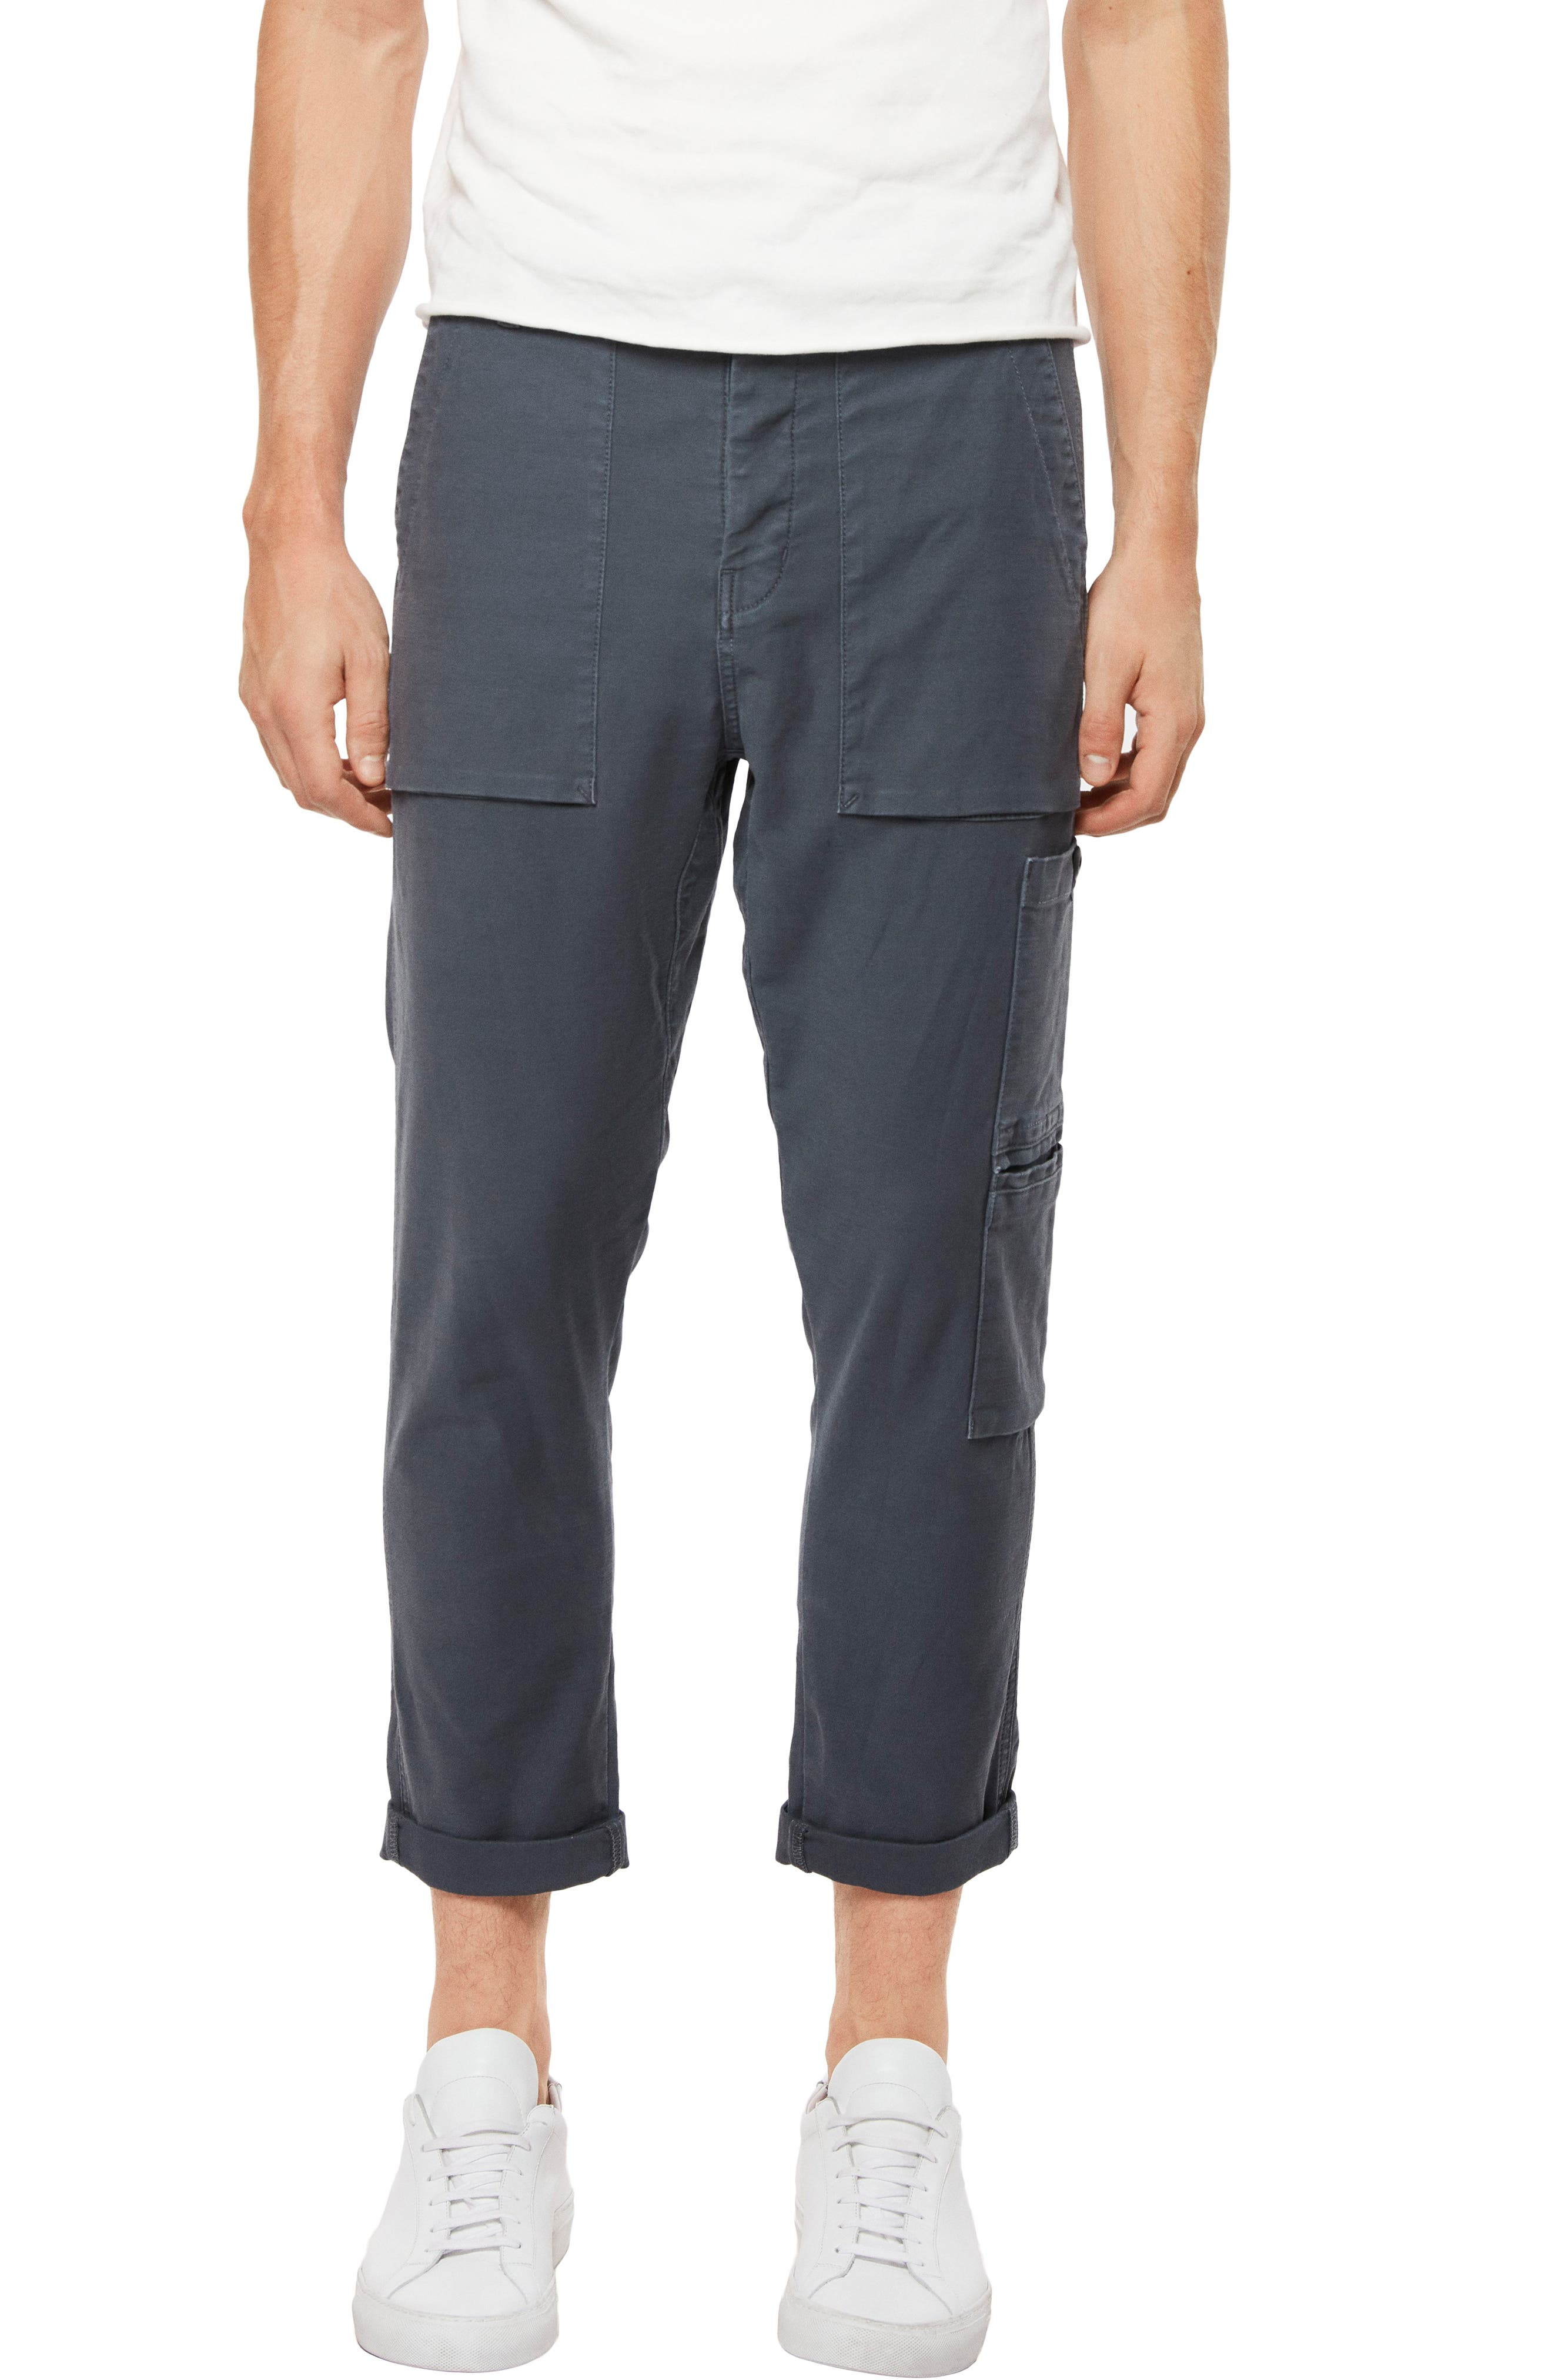 Koeficient Relaxed Fit Cargo Crop Pants,                         Main,                         color, Dull Bentonite